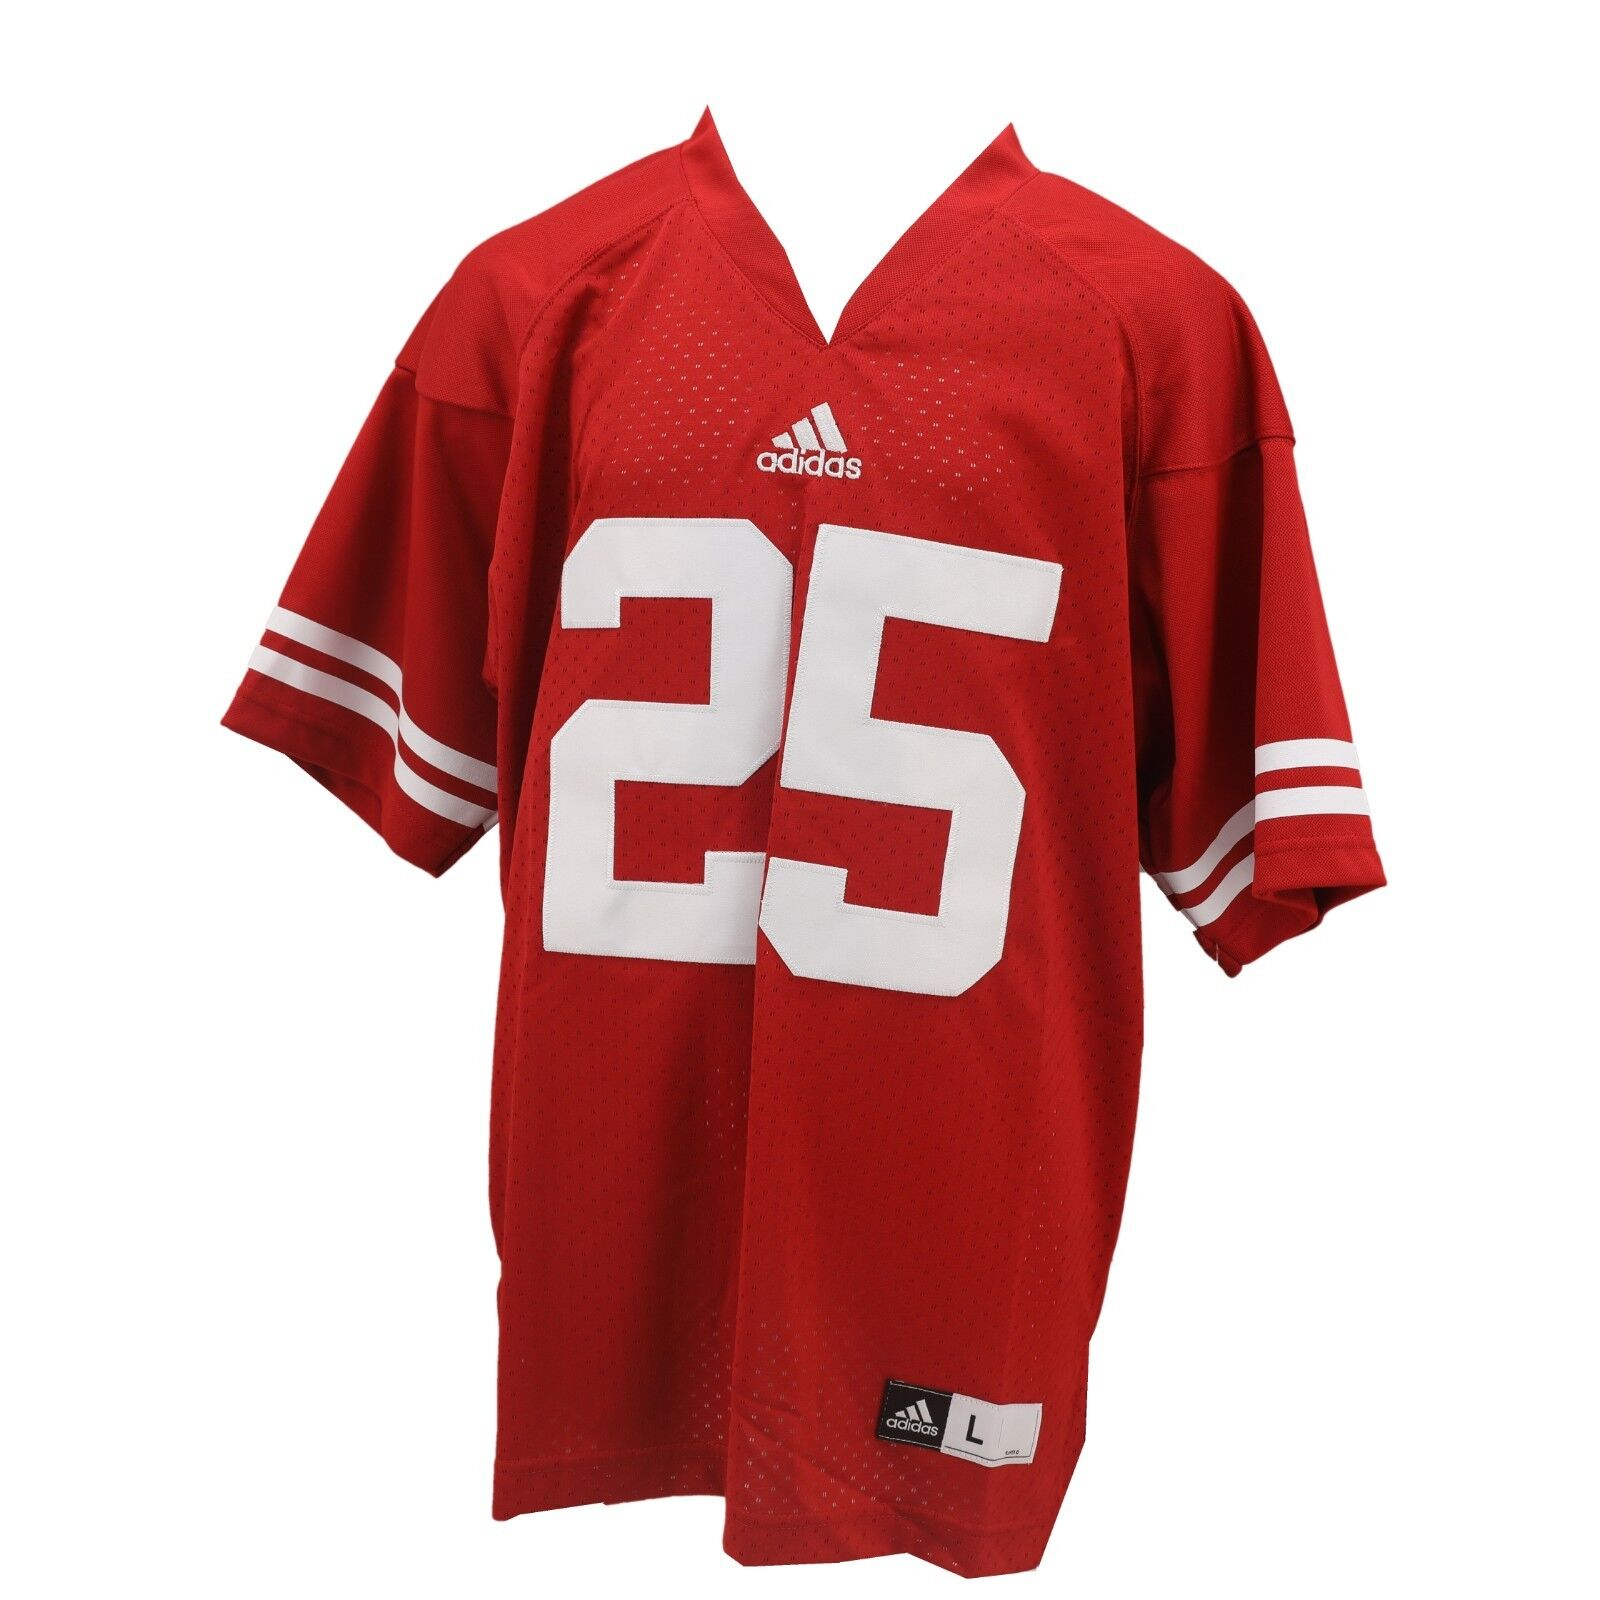 youth size football jerseys